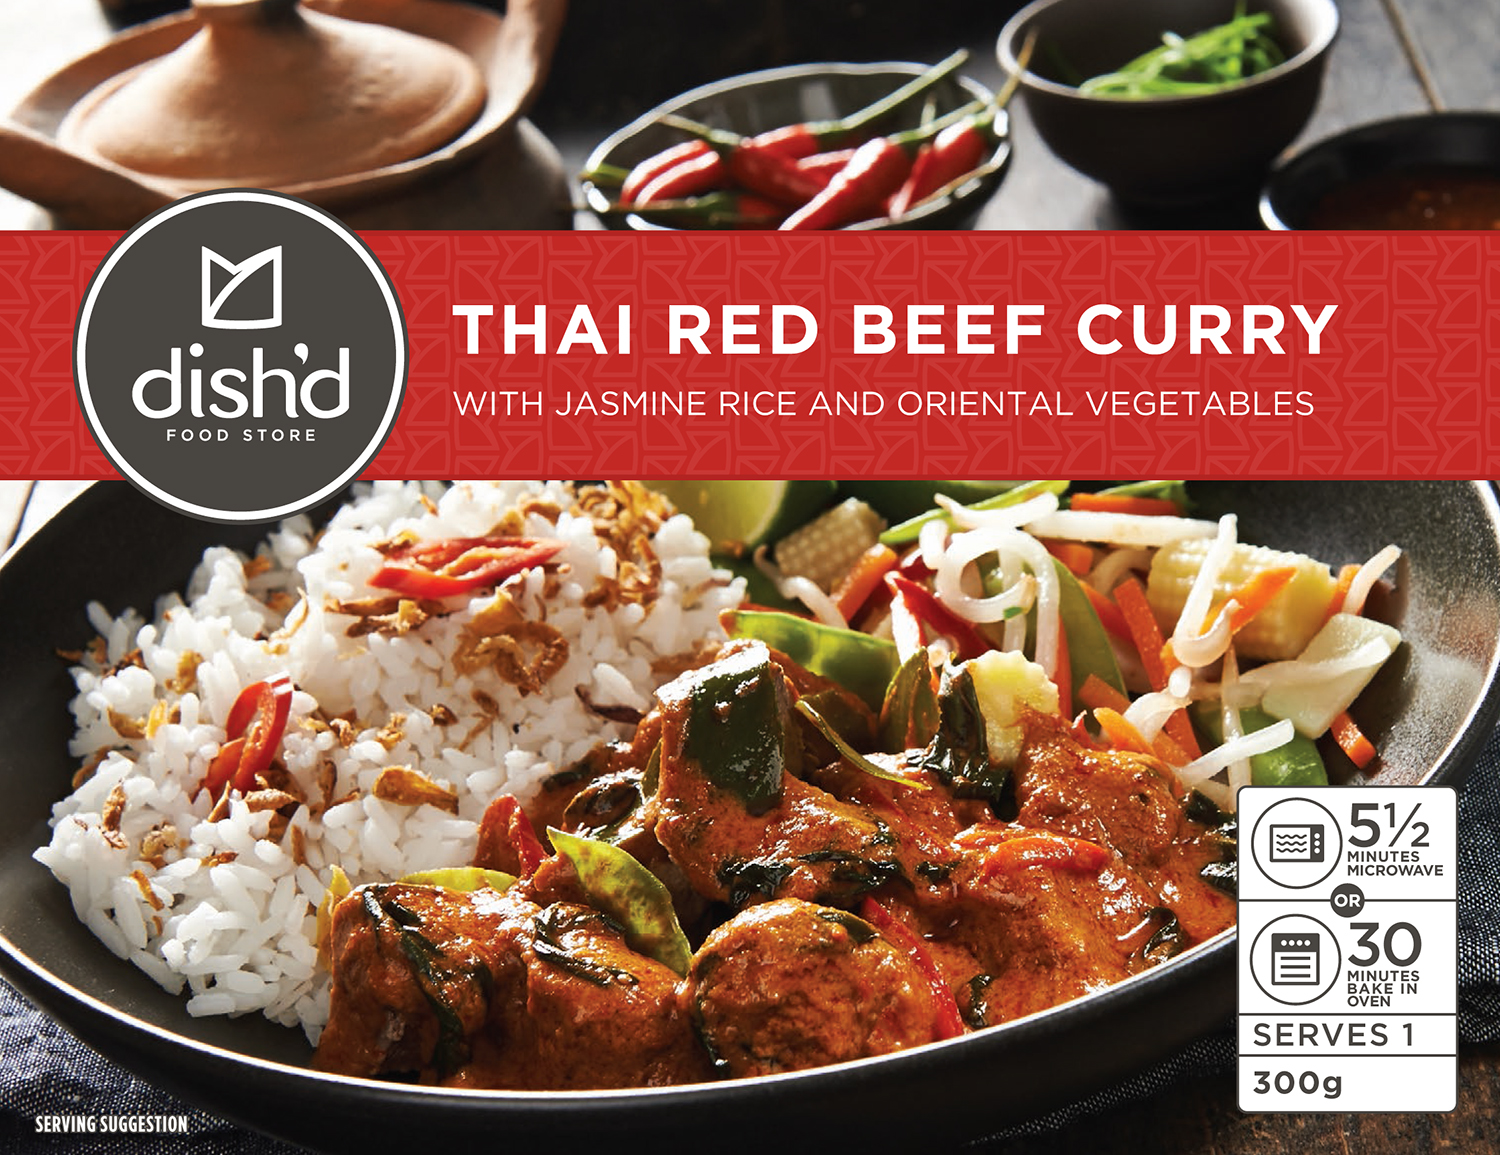 56054 Thai Red Beef Curry 300g_V3.jpg